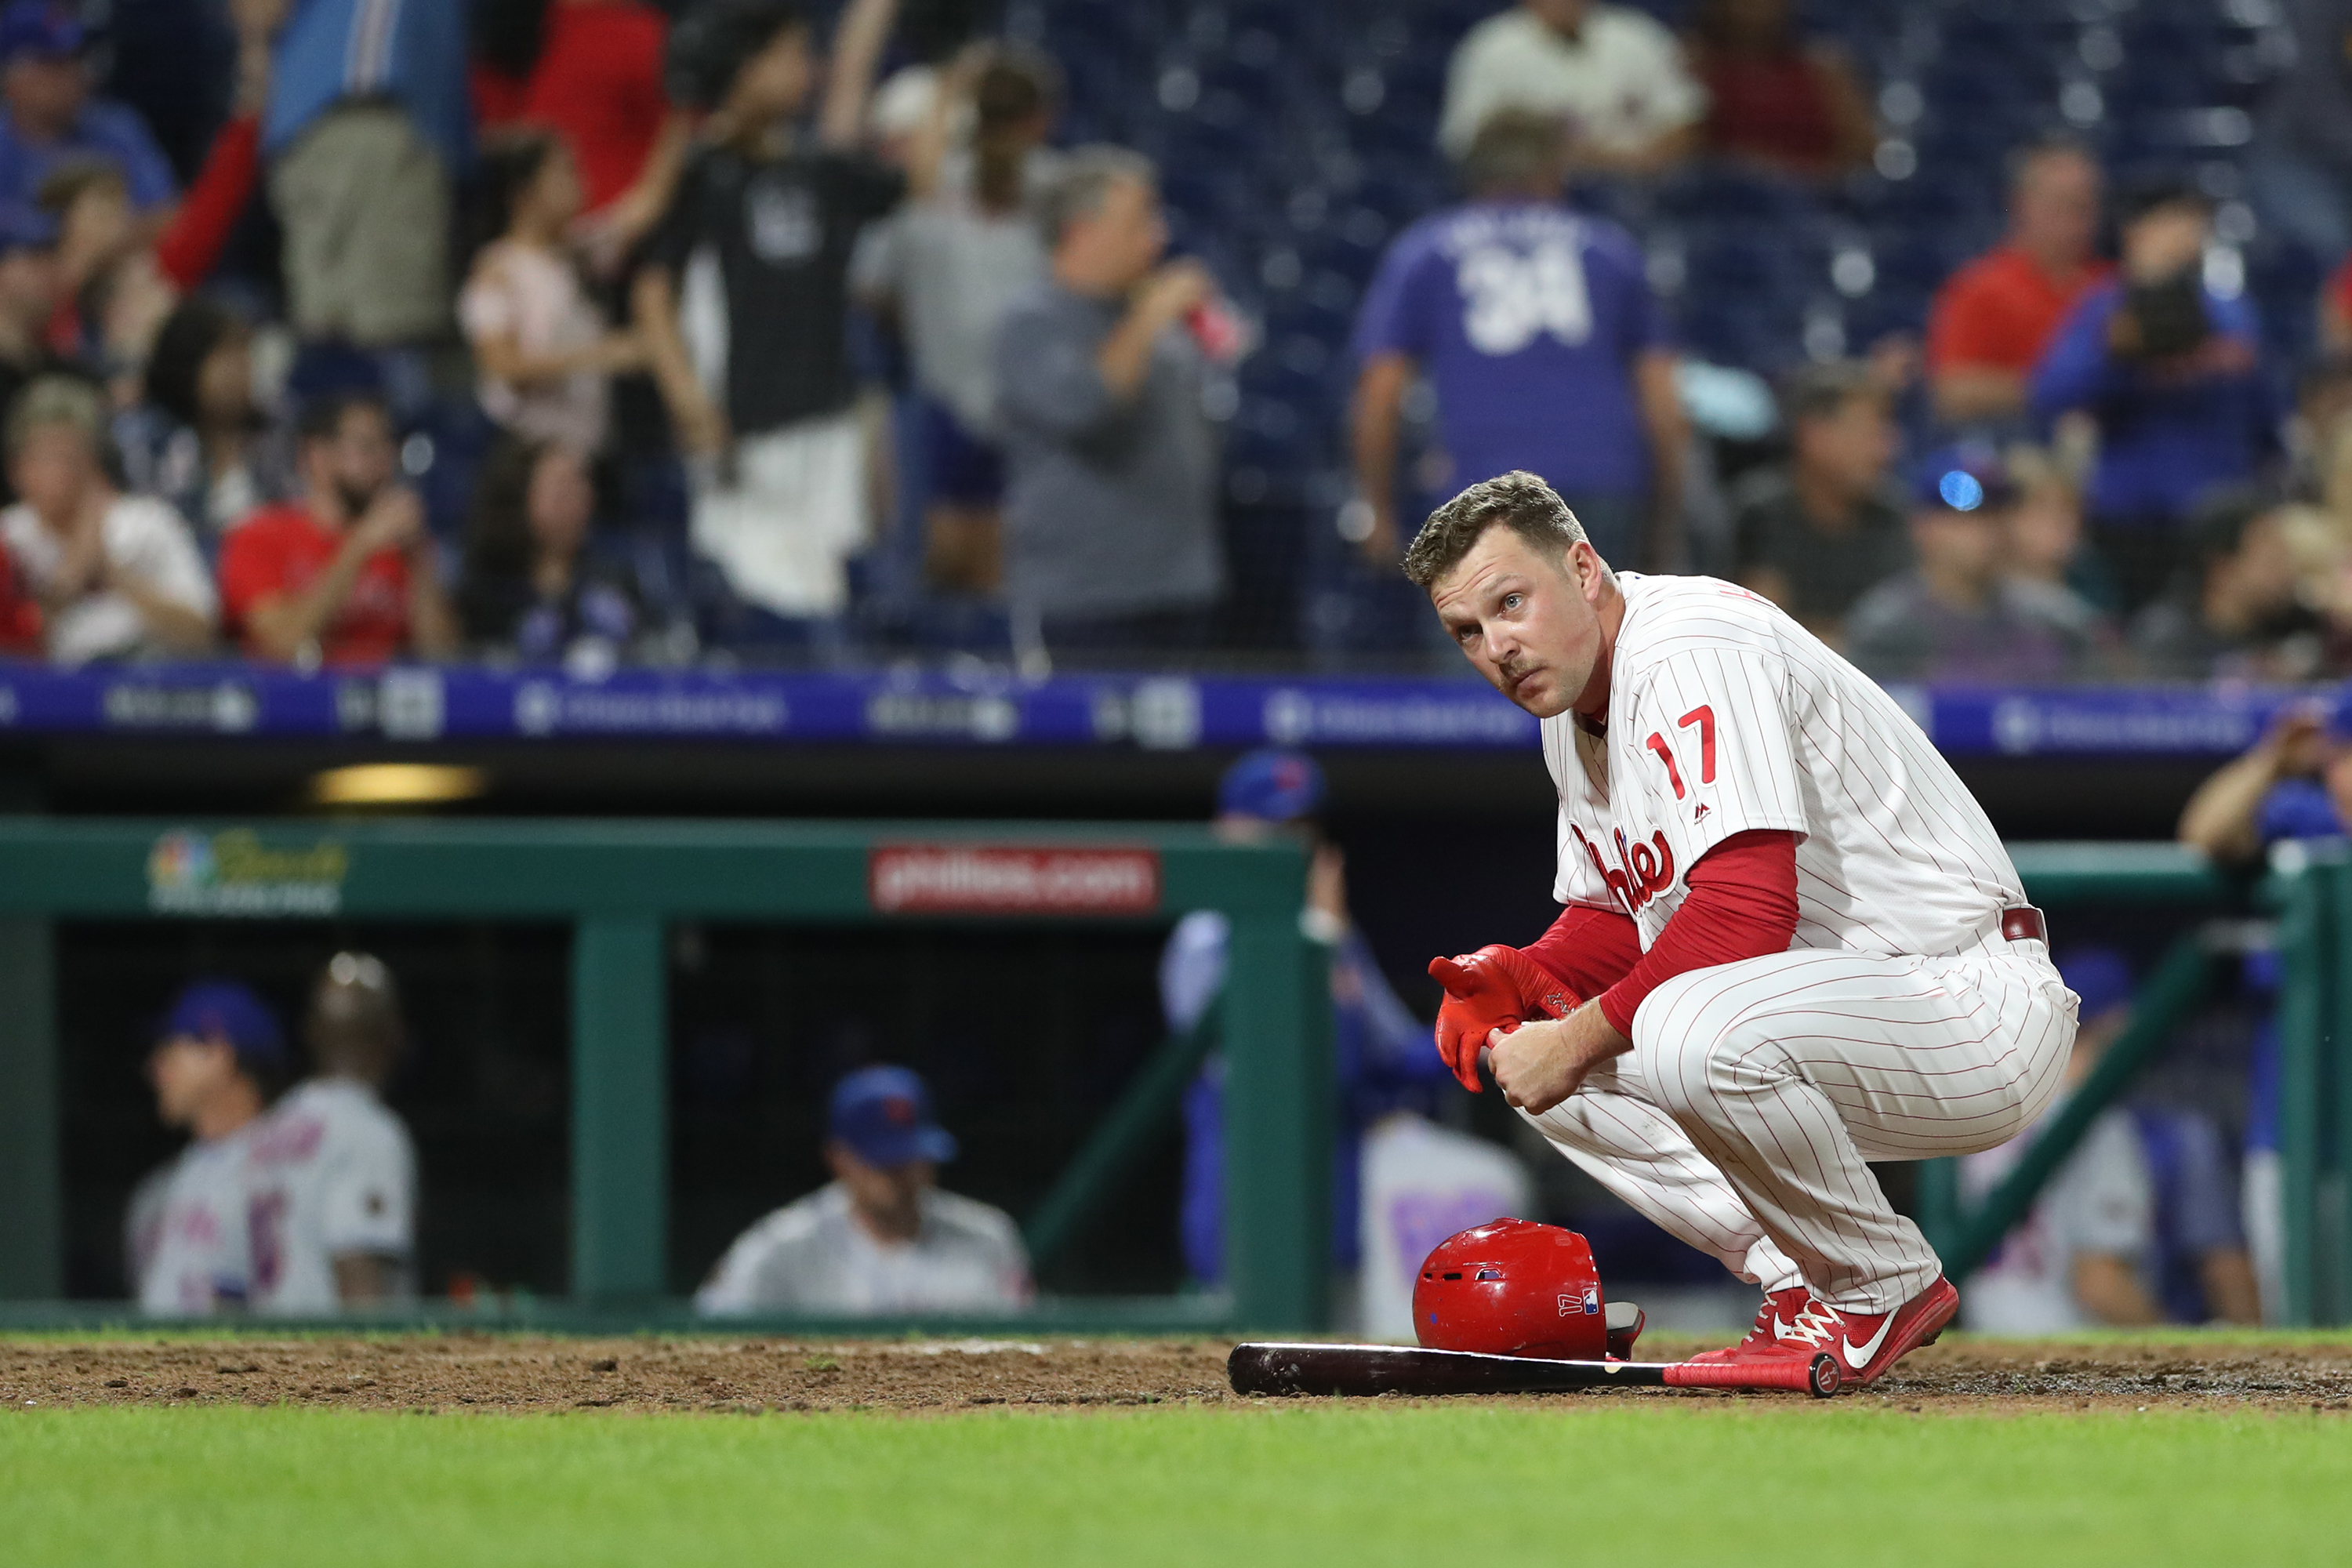 Phillies� slugger Rhys Hoskins kneels after striking out against the Mets on Sept. 18.